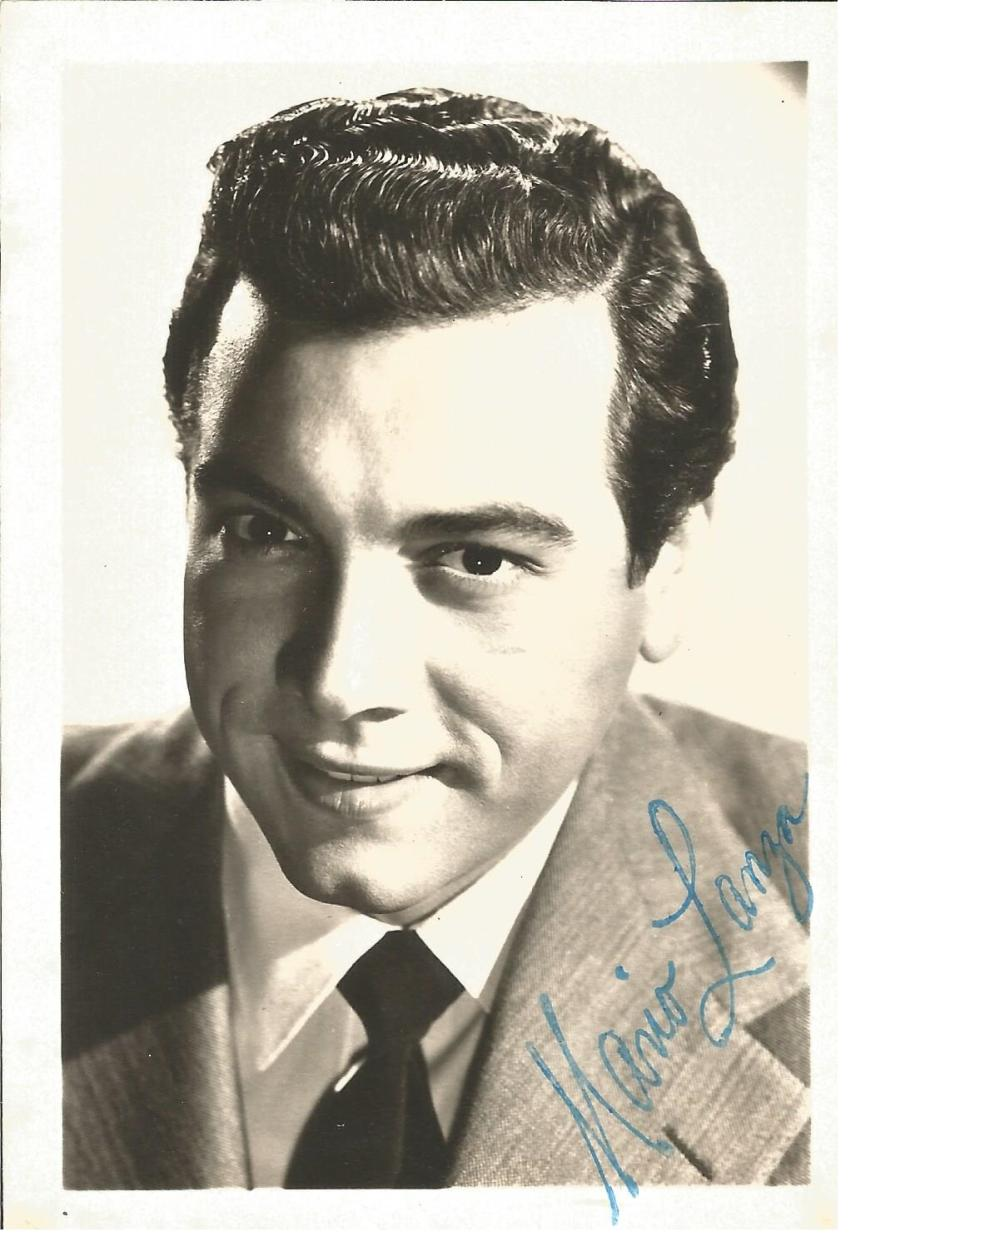 Mario Lanza signed 6x4 vintage postcard. Good Condition. All signed pieces come with a Certificate